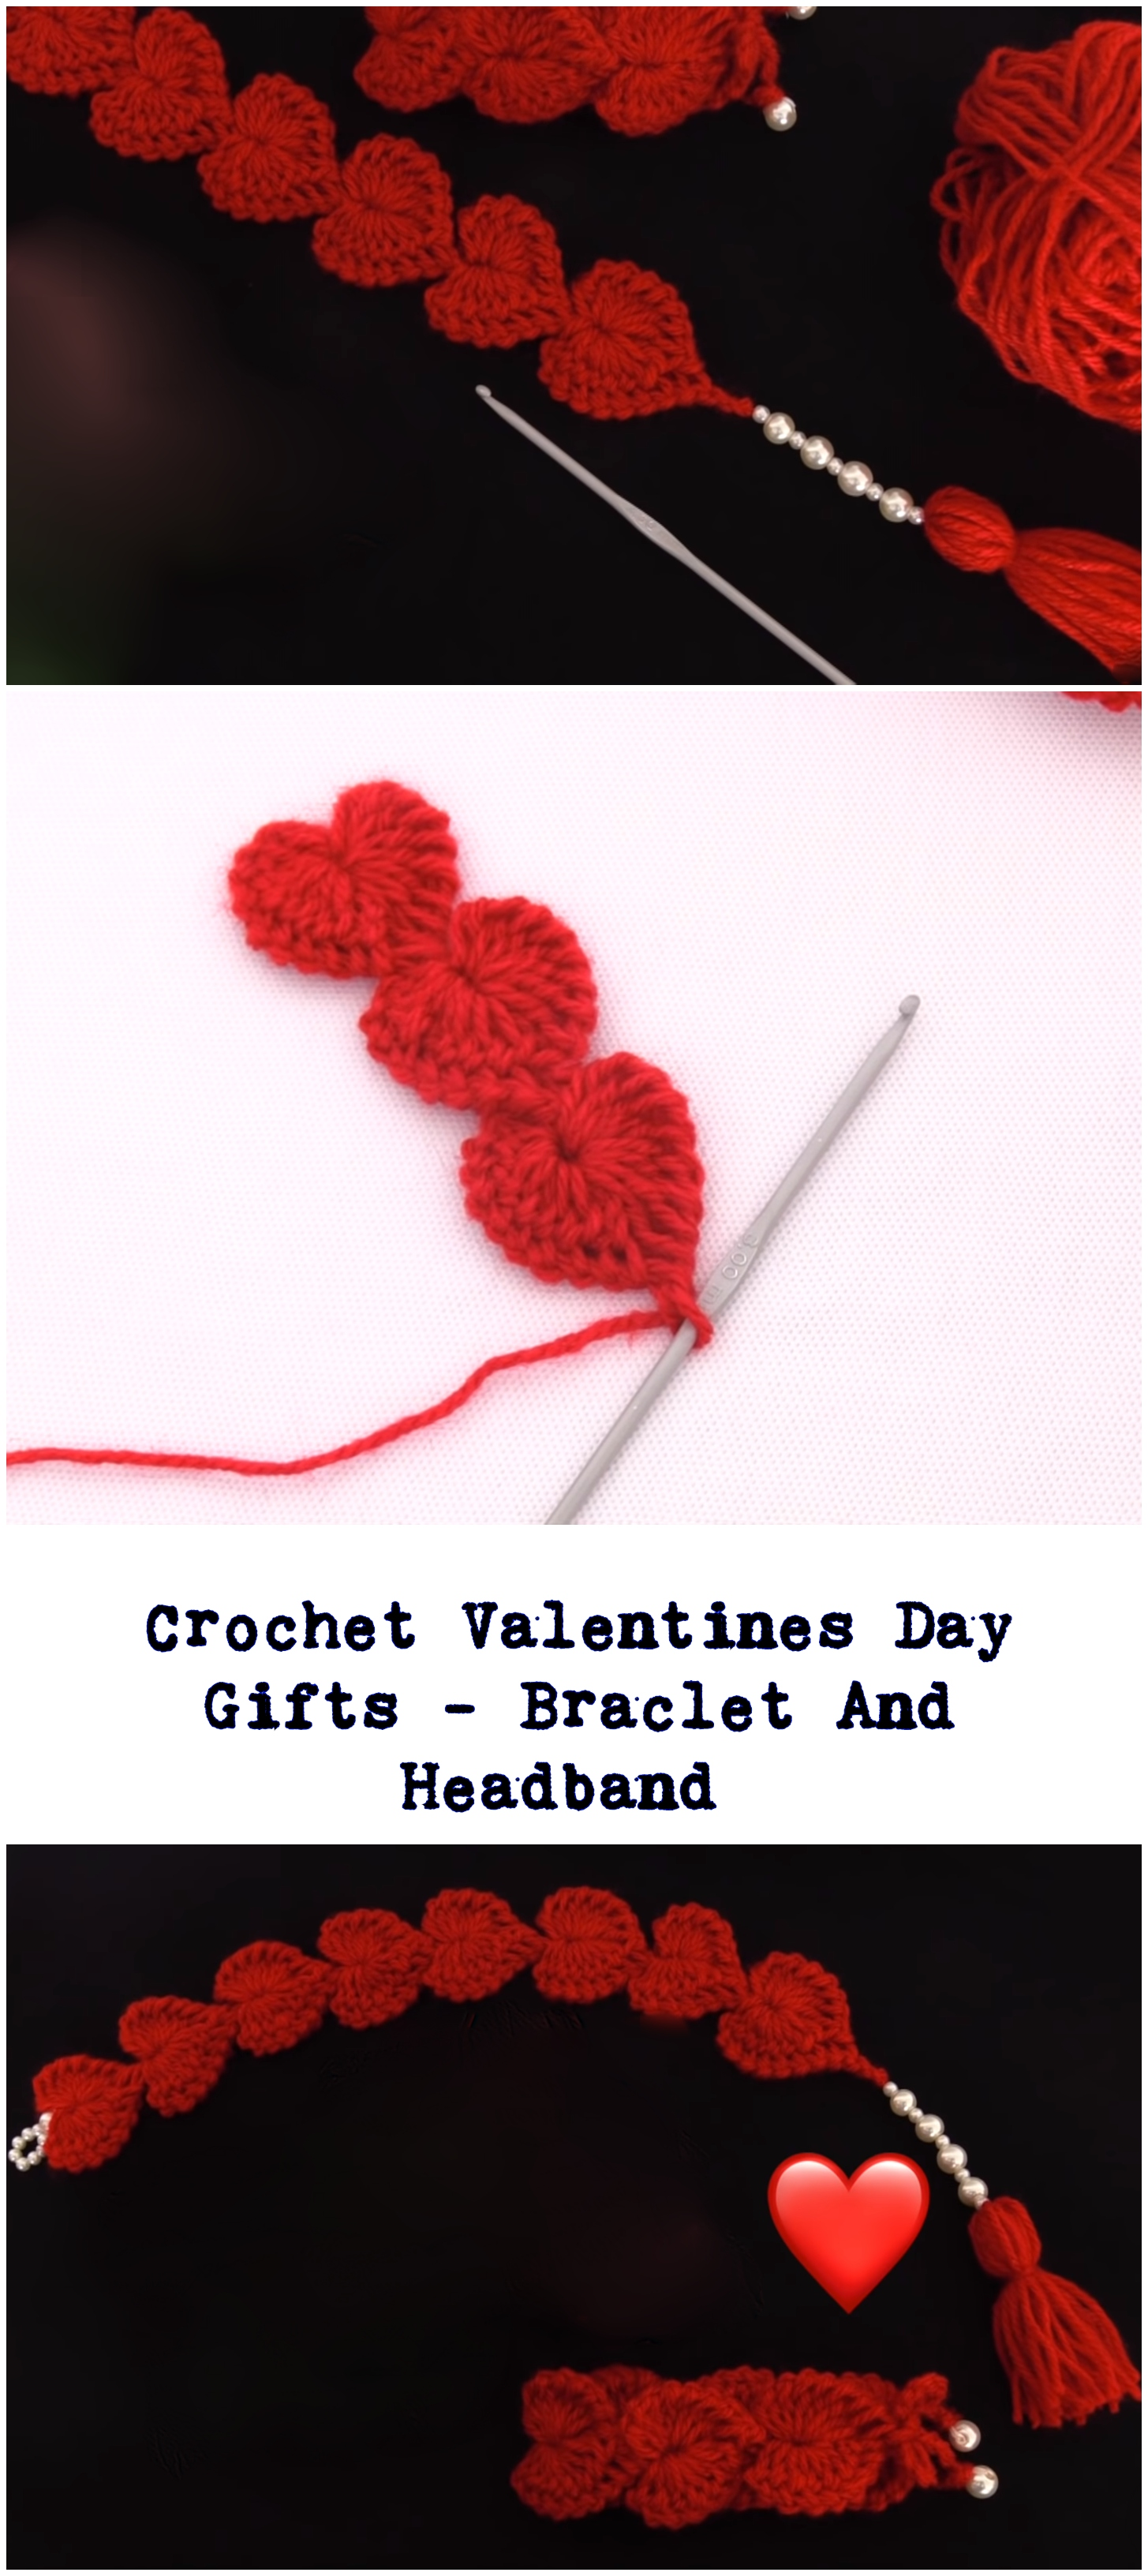 Crochet Valentines Day Gifts - Braclet And Headband